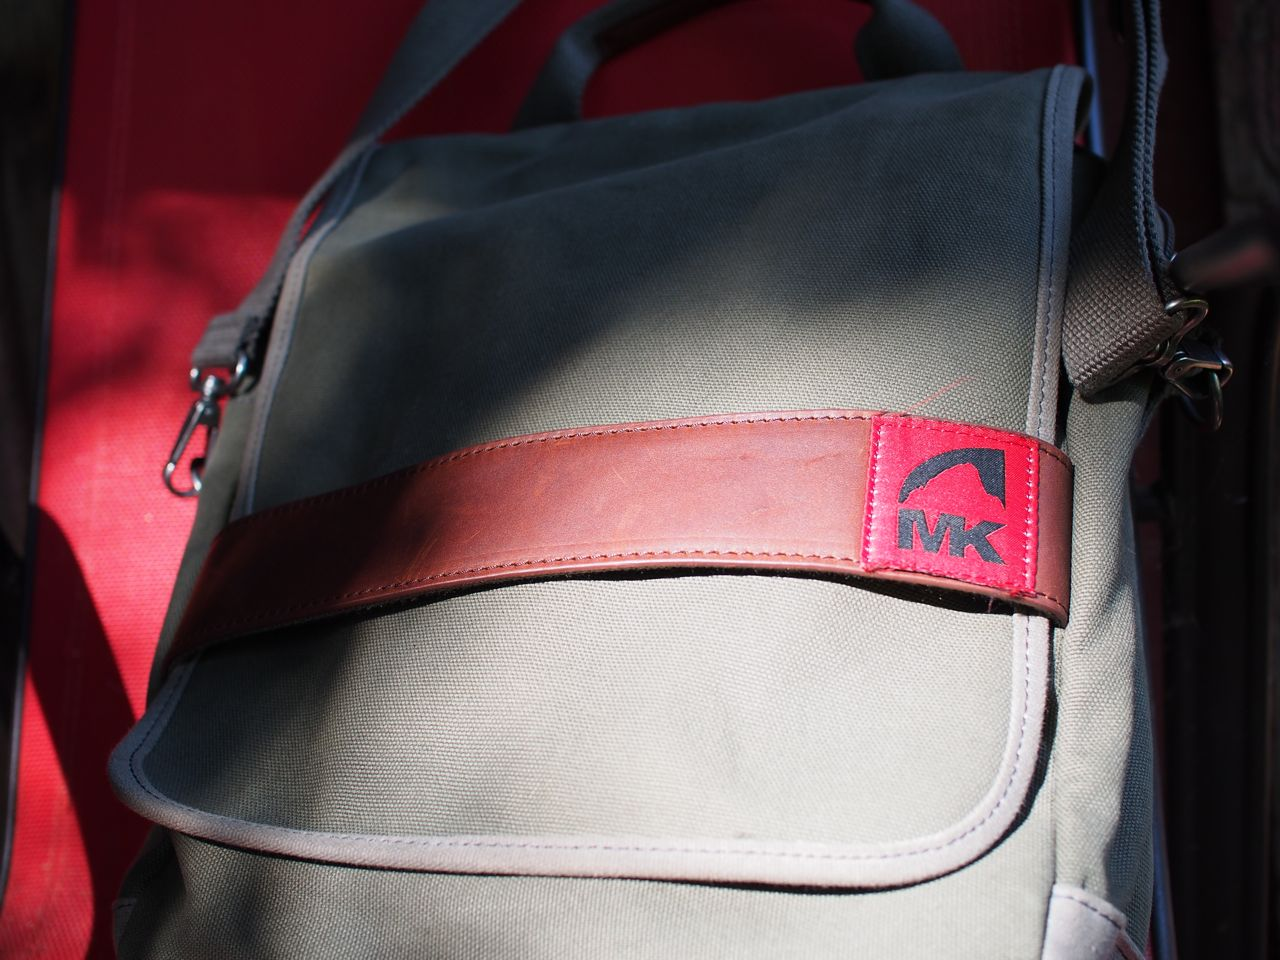 The Bag Has Nice Features Throughout Pockets Where You Need Them Secured And Quick Access Cover Flap Is Held On With A Looking Leather Strap